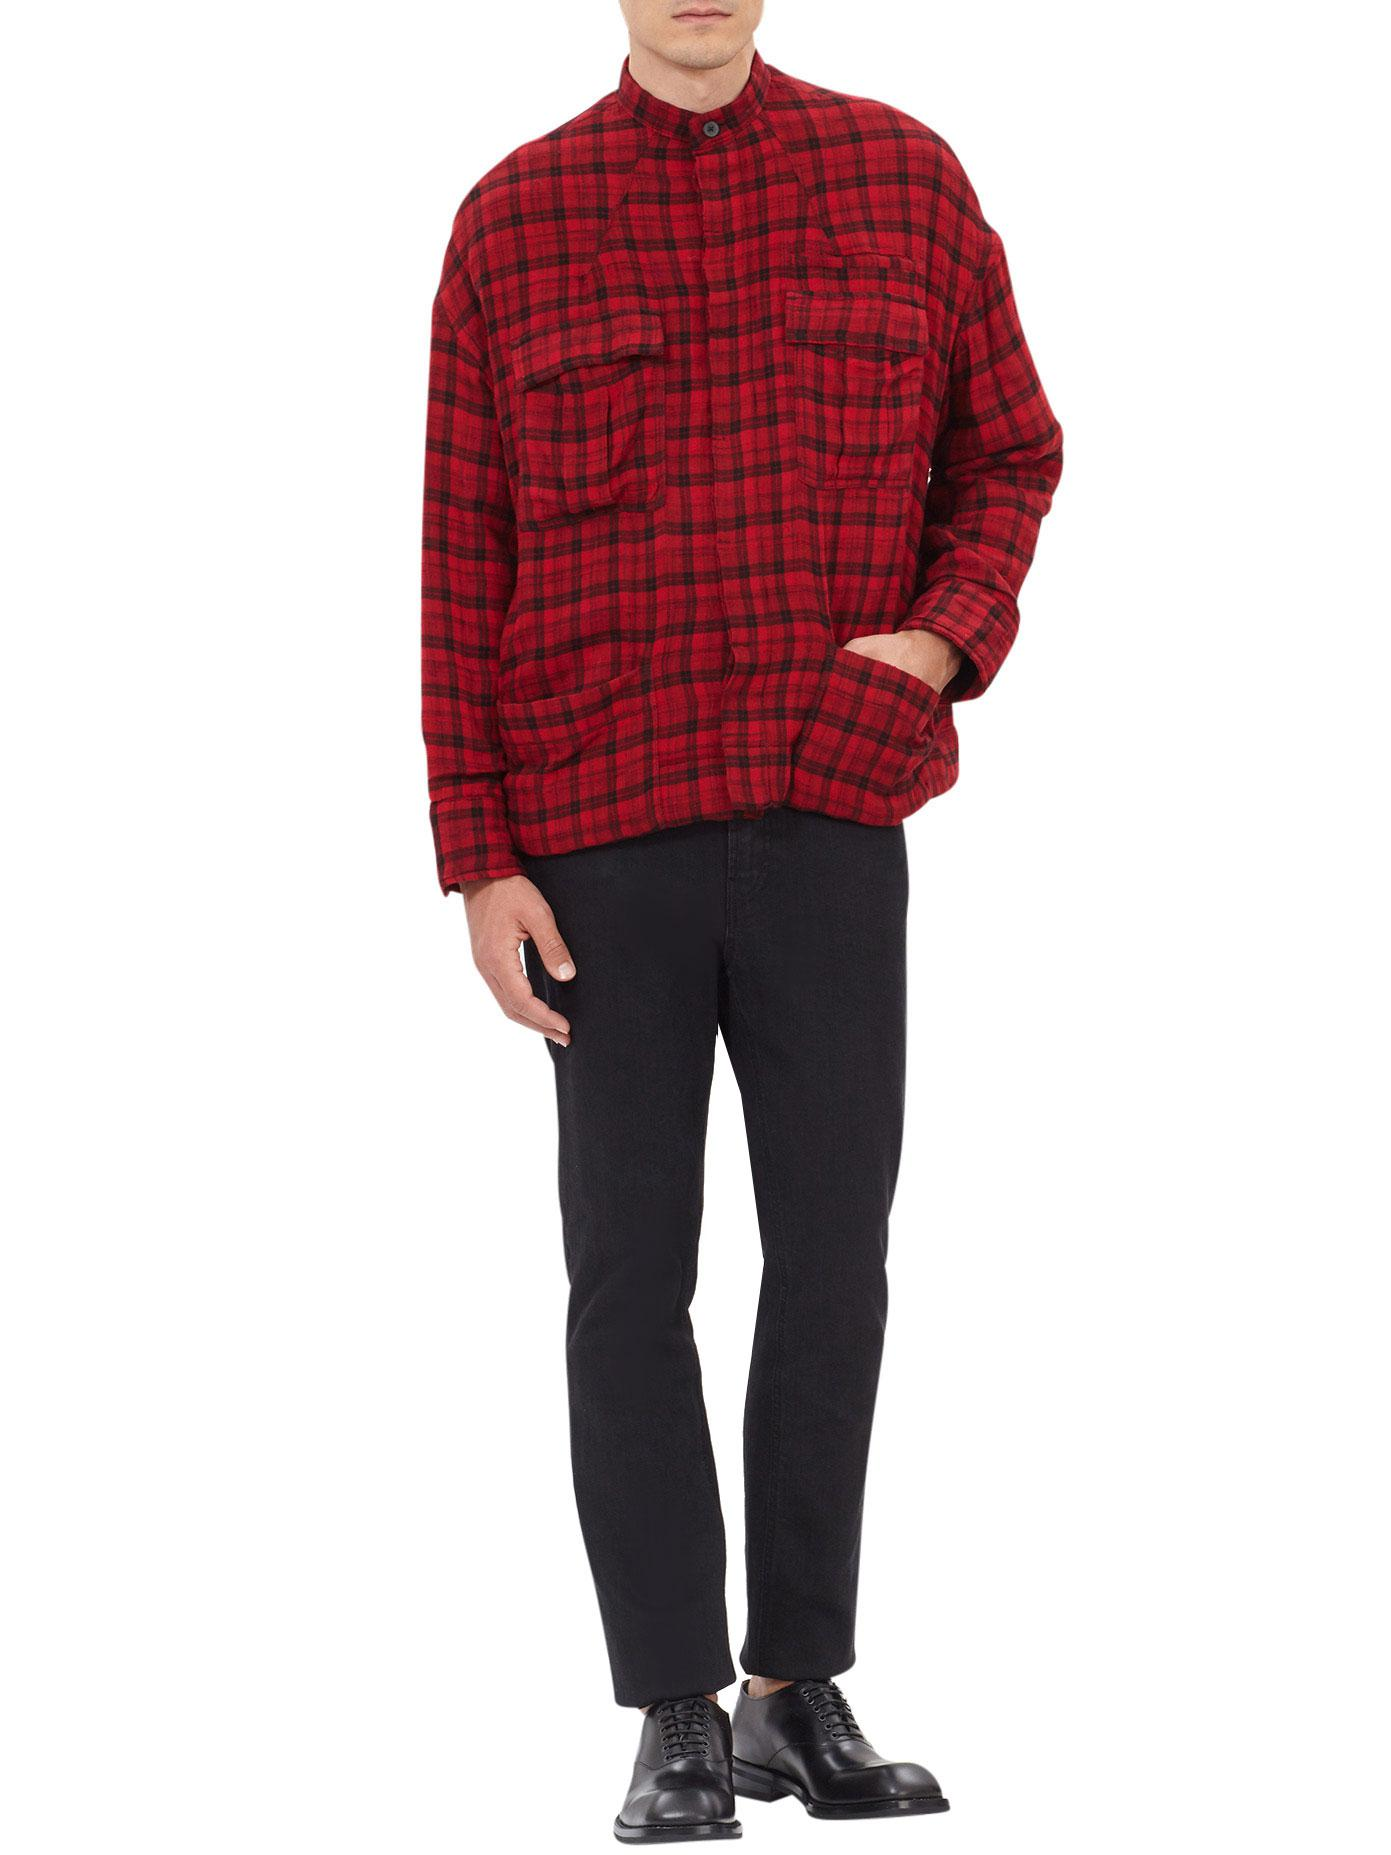 Haider Ackermann Wrinkled Check Wool Shirt in Red/Checked (Red) for Men